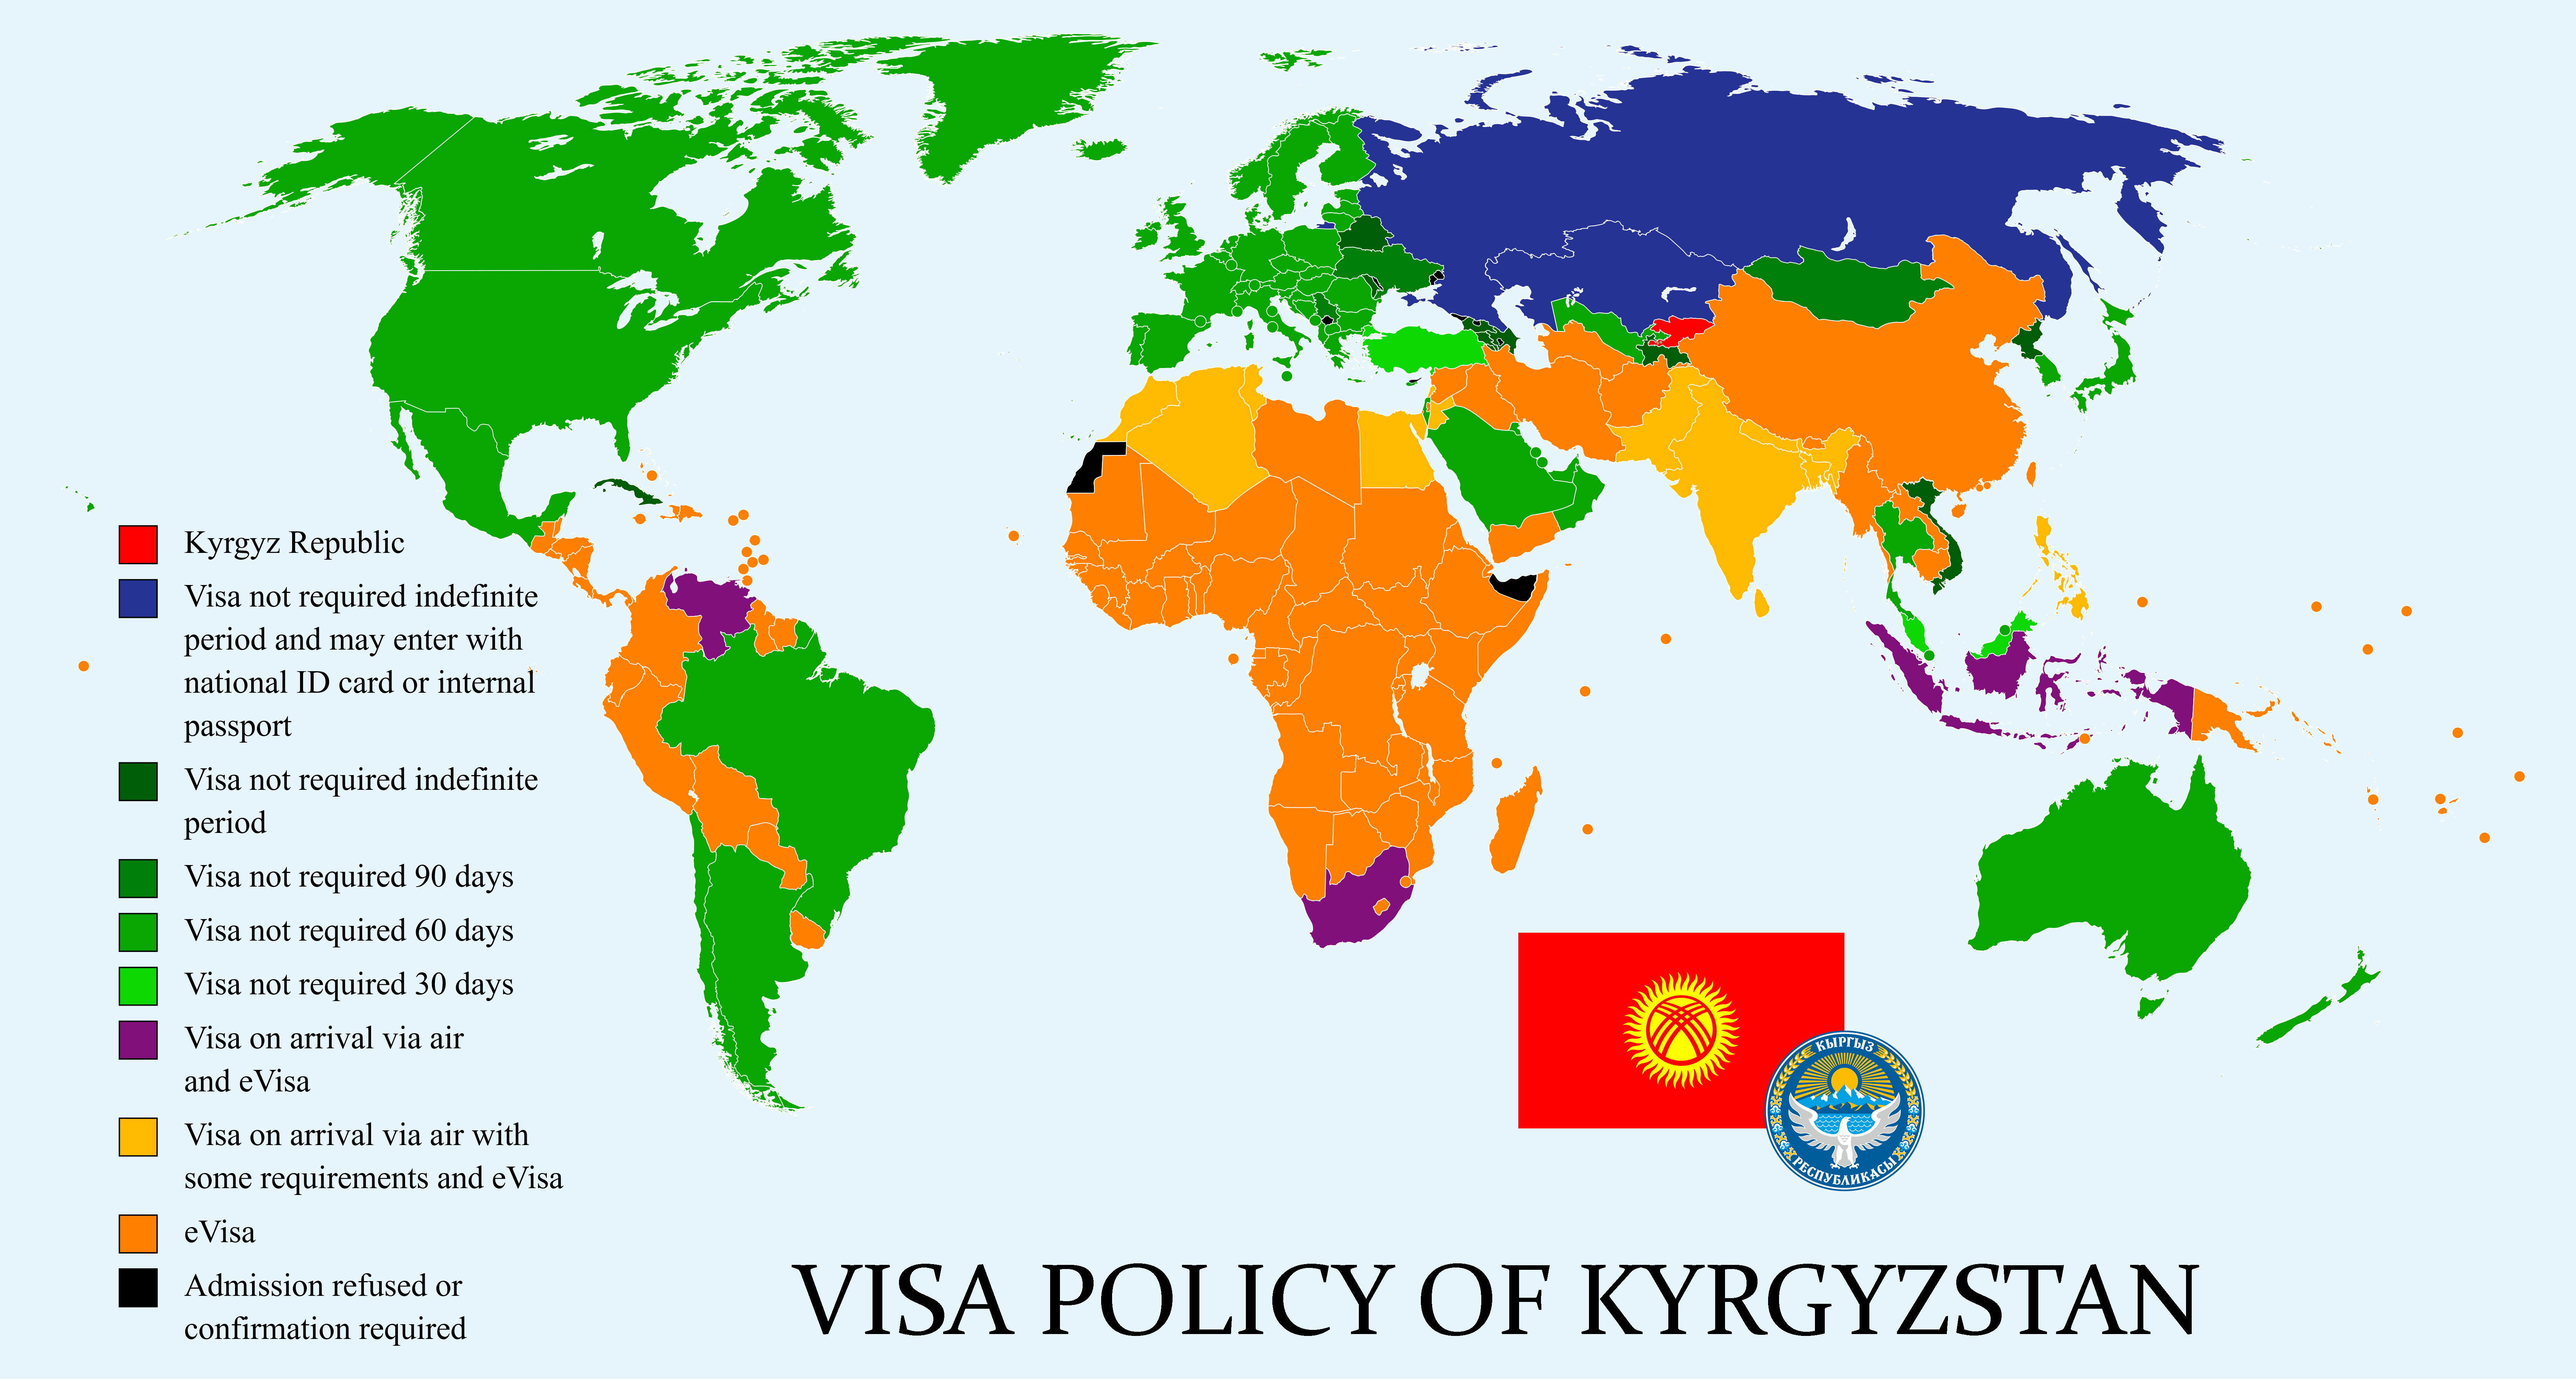 https://upload.wikimedia.org/wikipedia/commons/0/08/Visa_policy_of_Kyrgyzstan.png